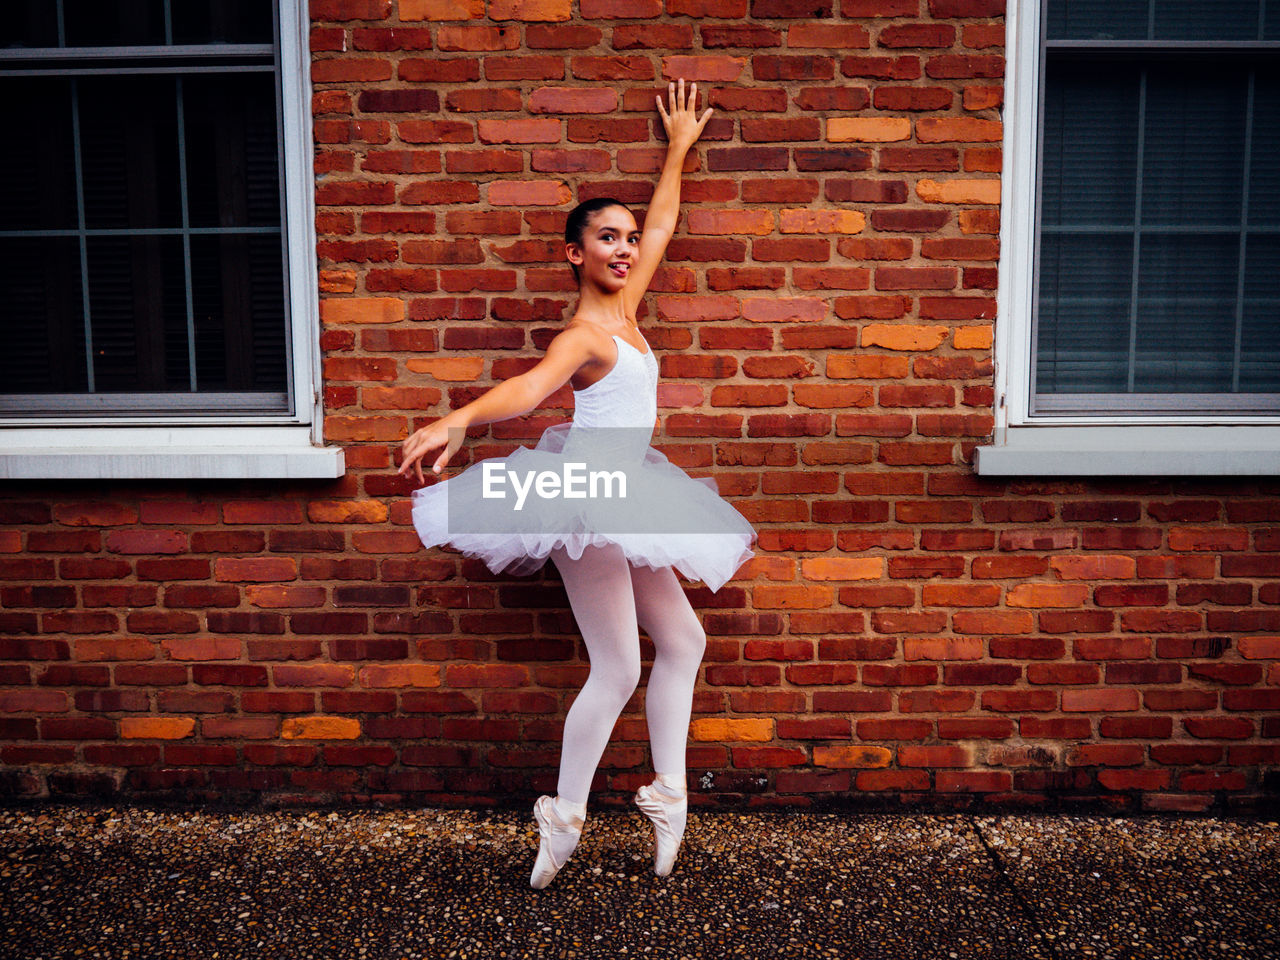 full length, one person, young adult, brick, ballet, ballet dancer, brick wall, human arm, architecture, arms raised, limb, dancing, tutu, young women, human limb, looking at camera, women, portrait, body part, beautiful woman, fashion, skill, outdoors